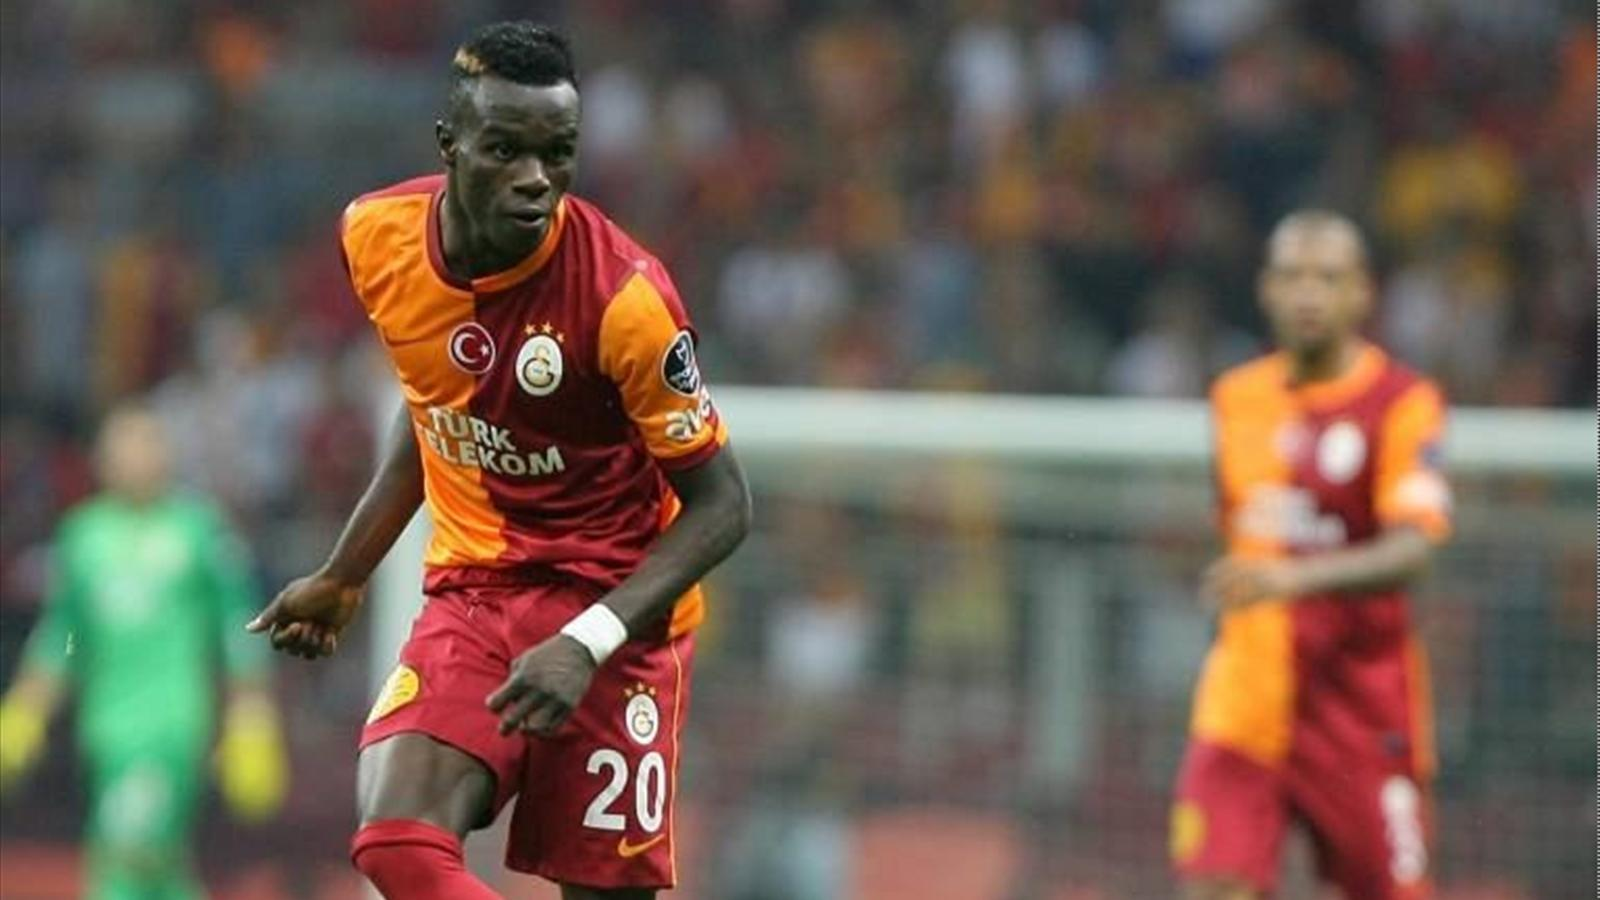 Bruma Football Player Portugal